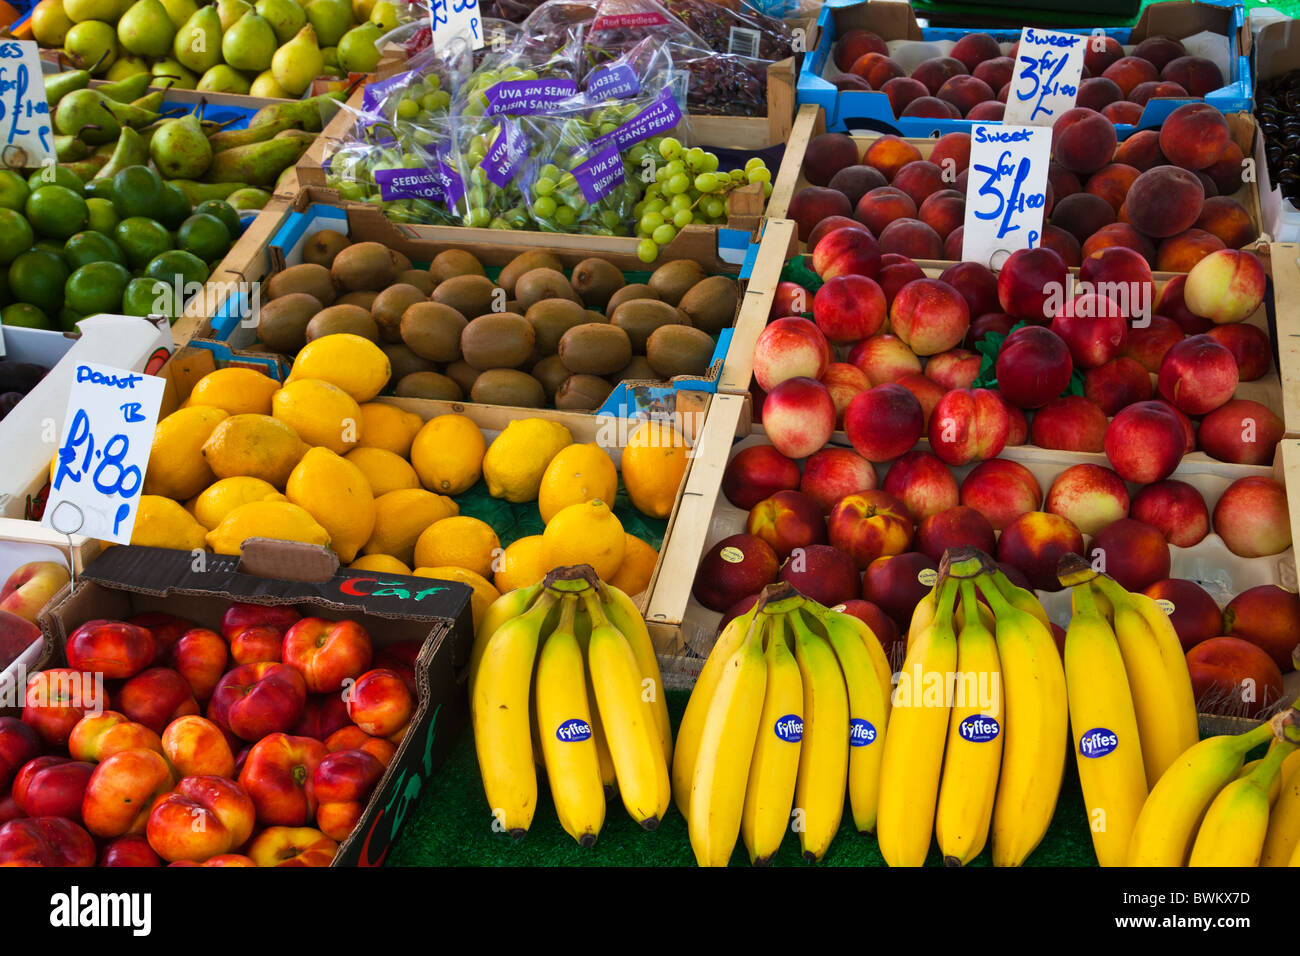 Selection of fresh fruits and vegetables at at fruits and vegetable stall at Portobello Road market - Stock Image